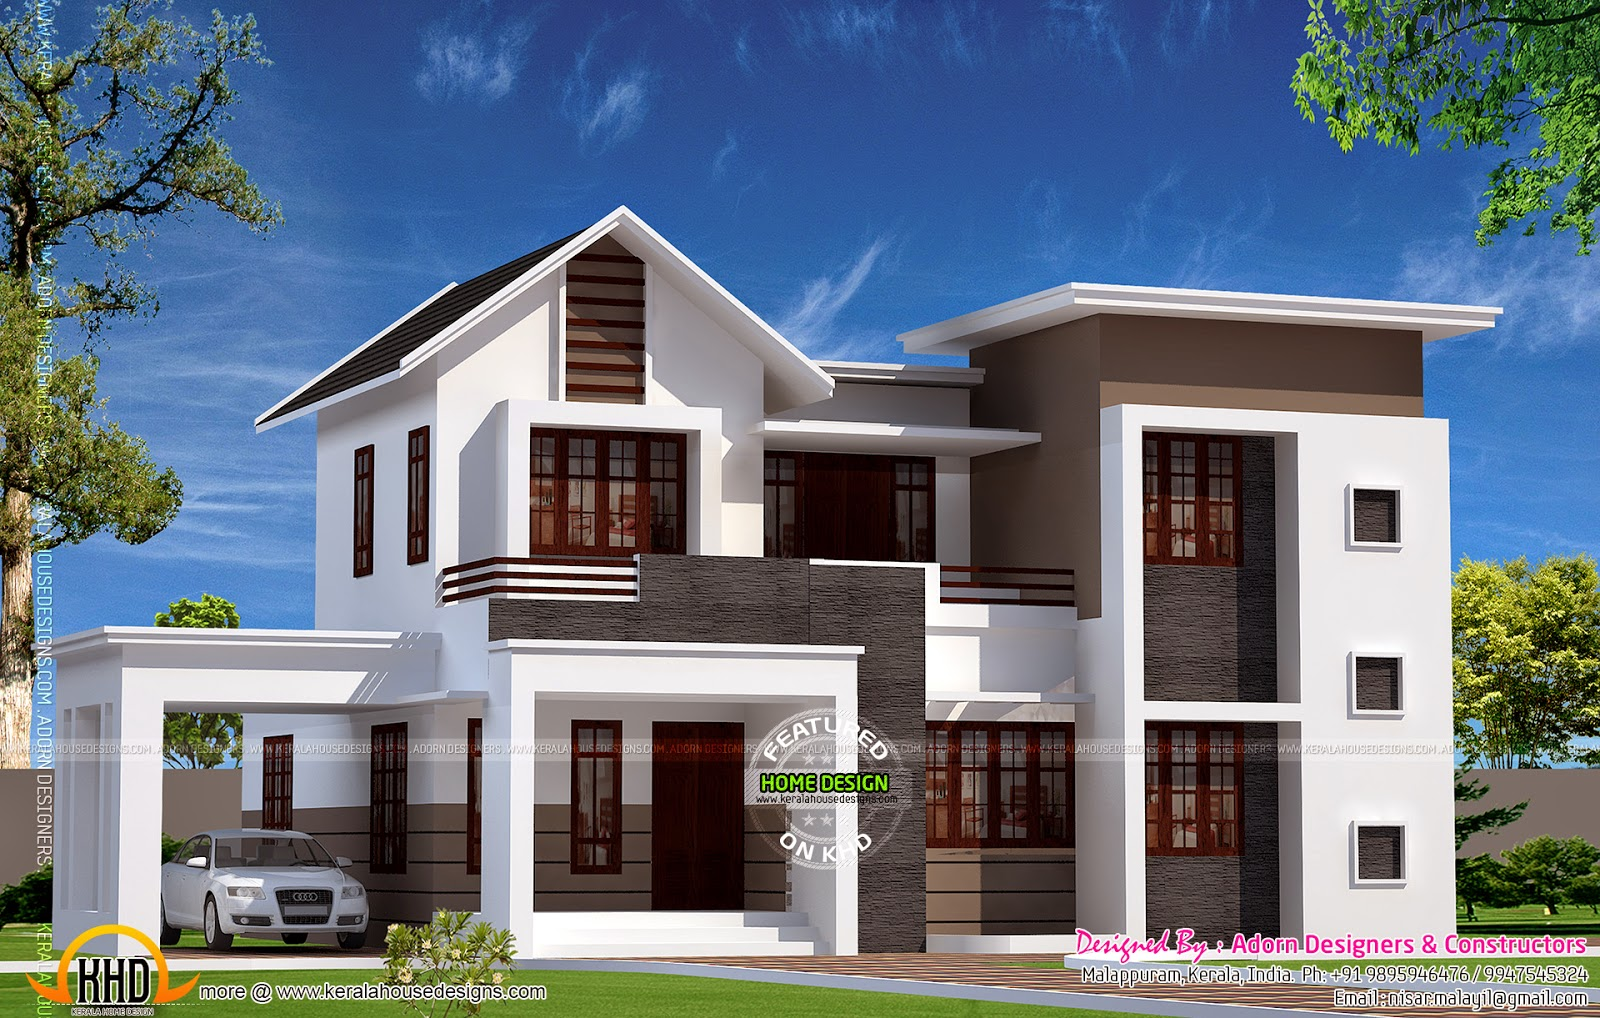 New house design in 1900 sq feet kerala home design and for Home building design